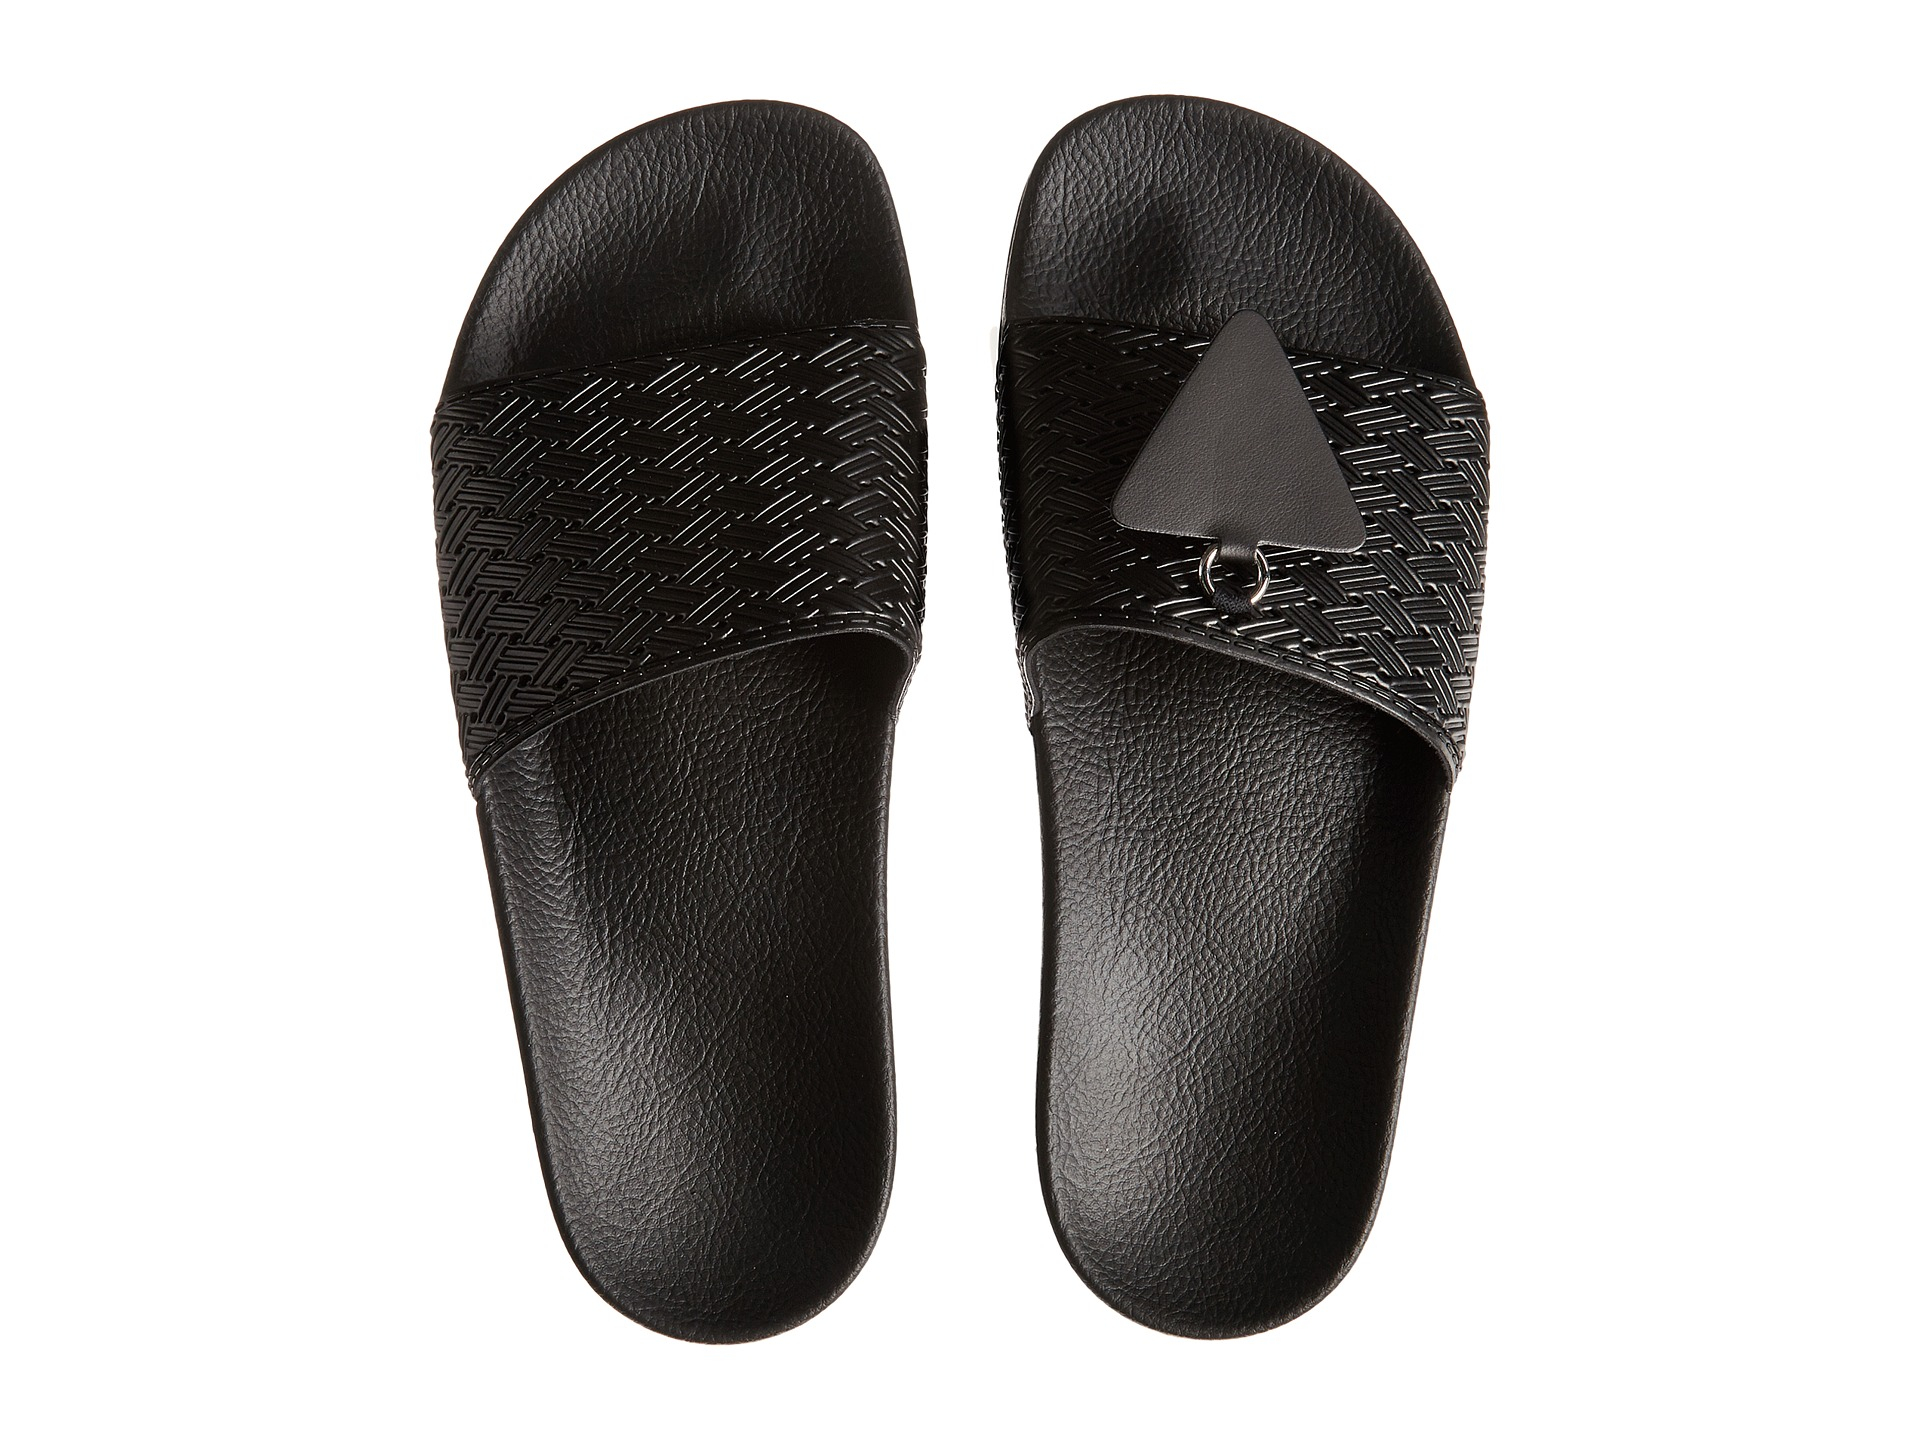 Adidas By Raf Simons Adilette Rubber Slide Sandals In